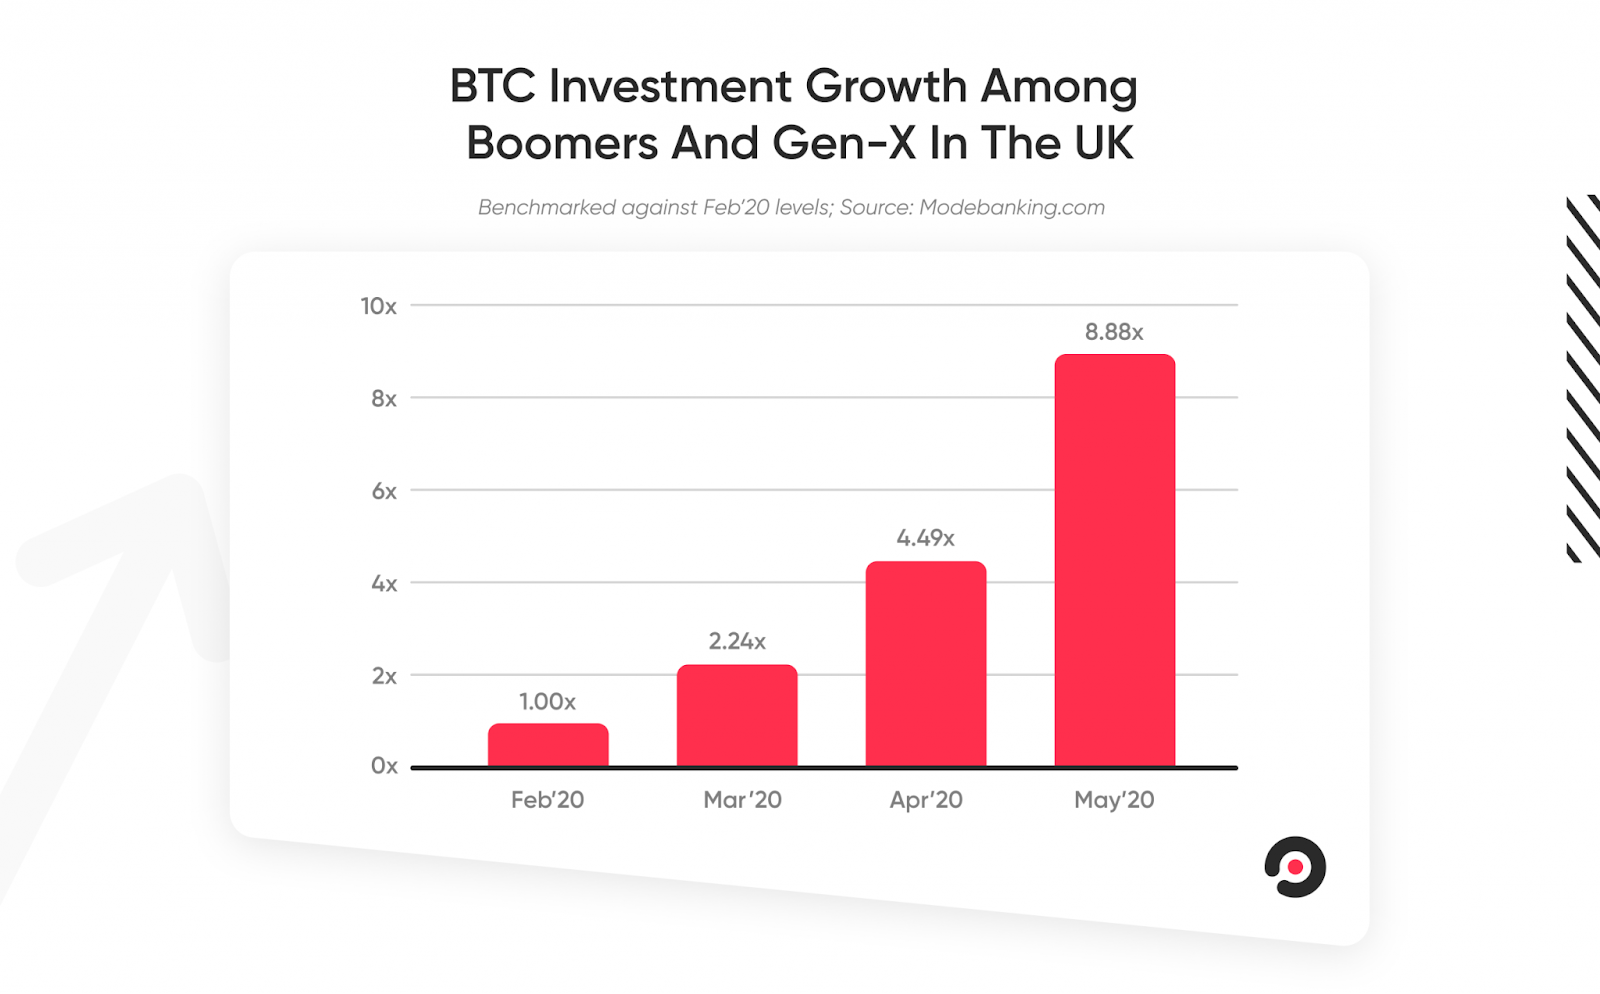 Bitcoin investments by older generations are increasing during COVID-19